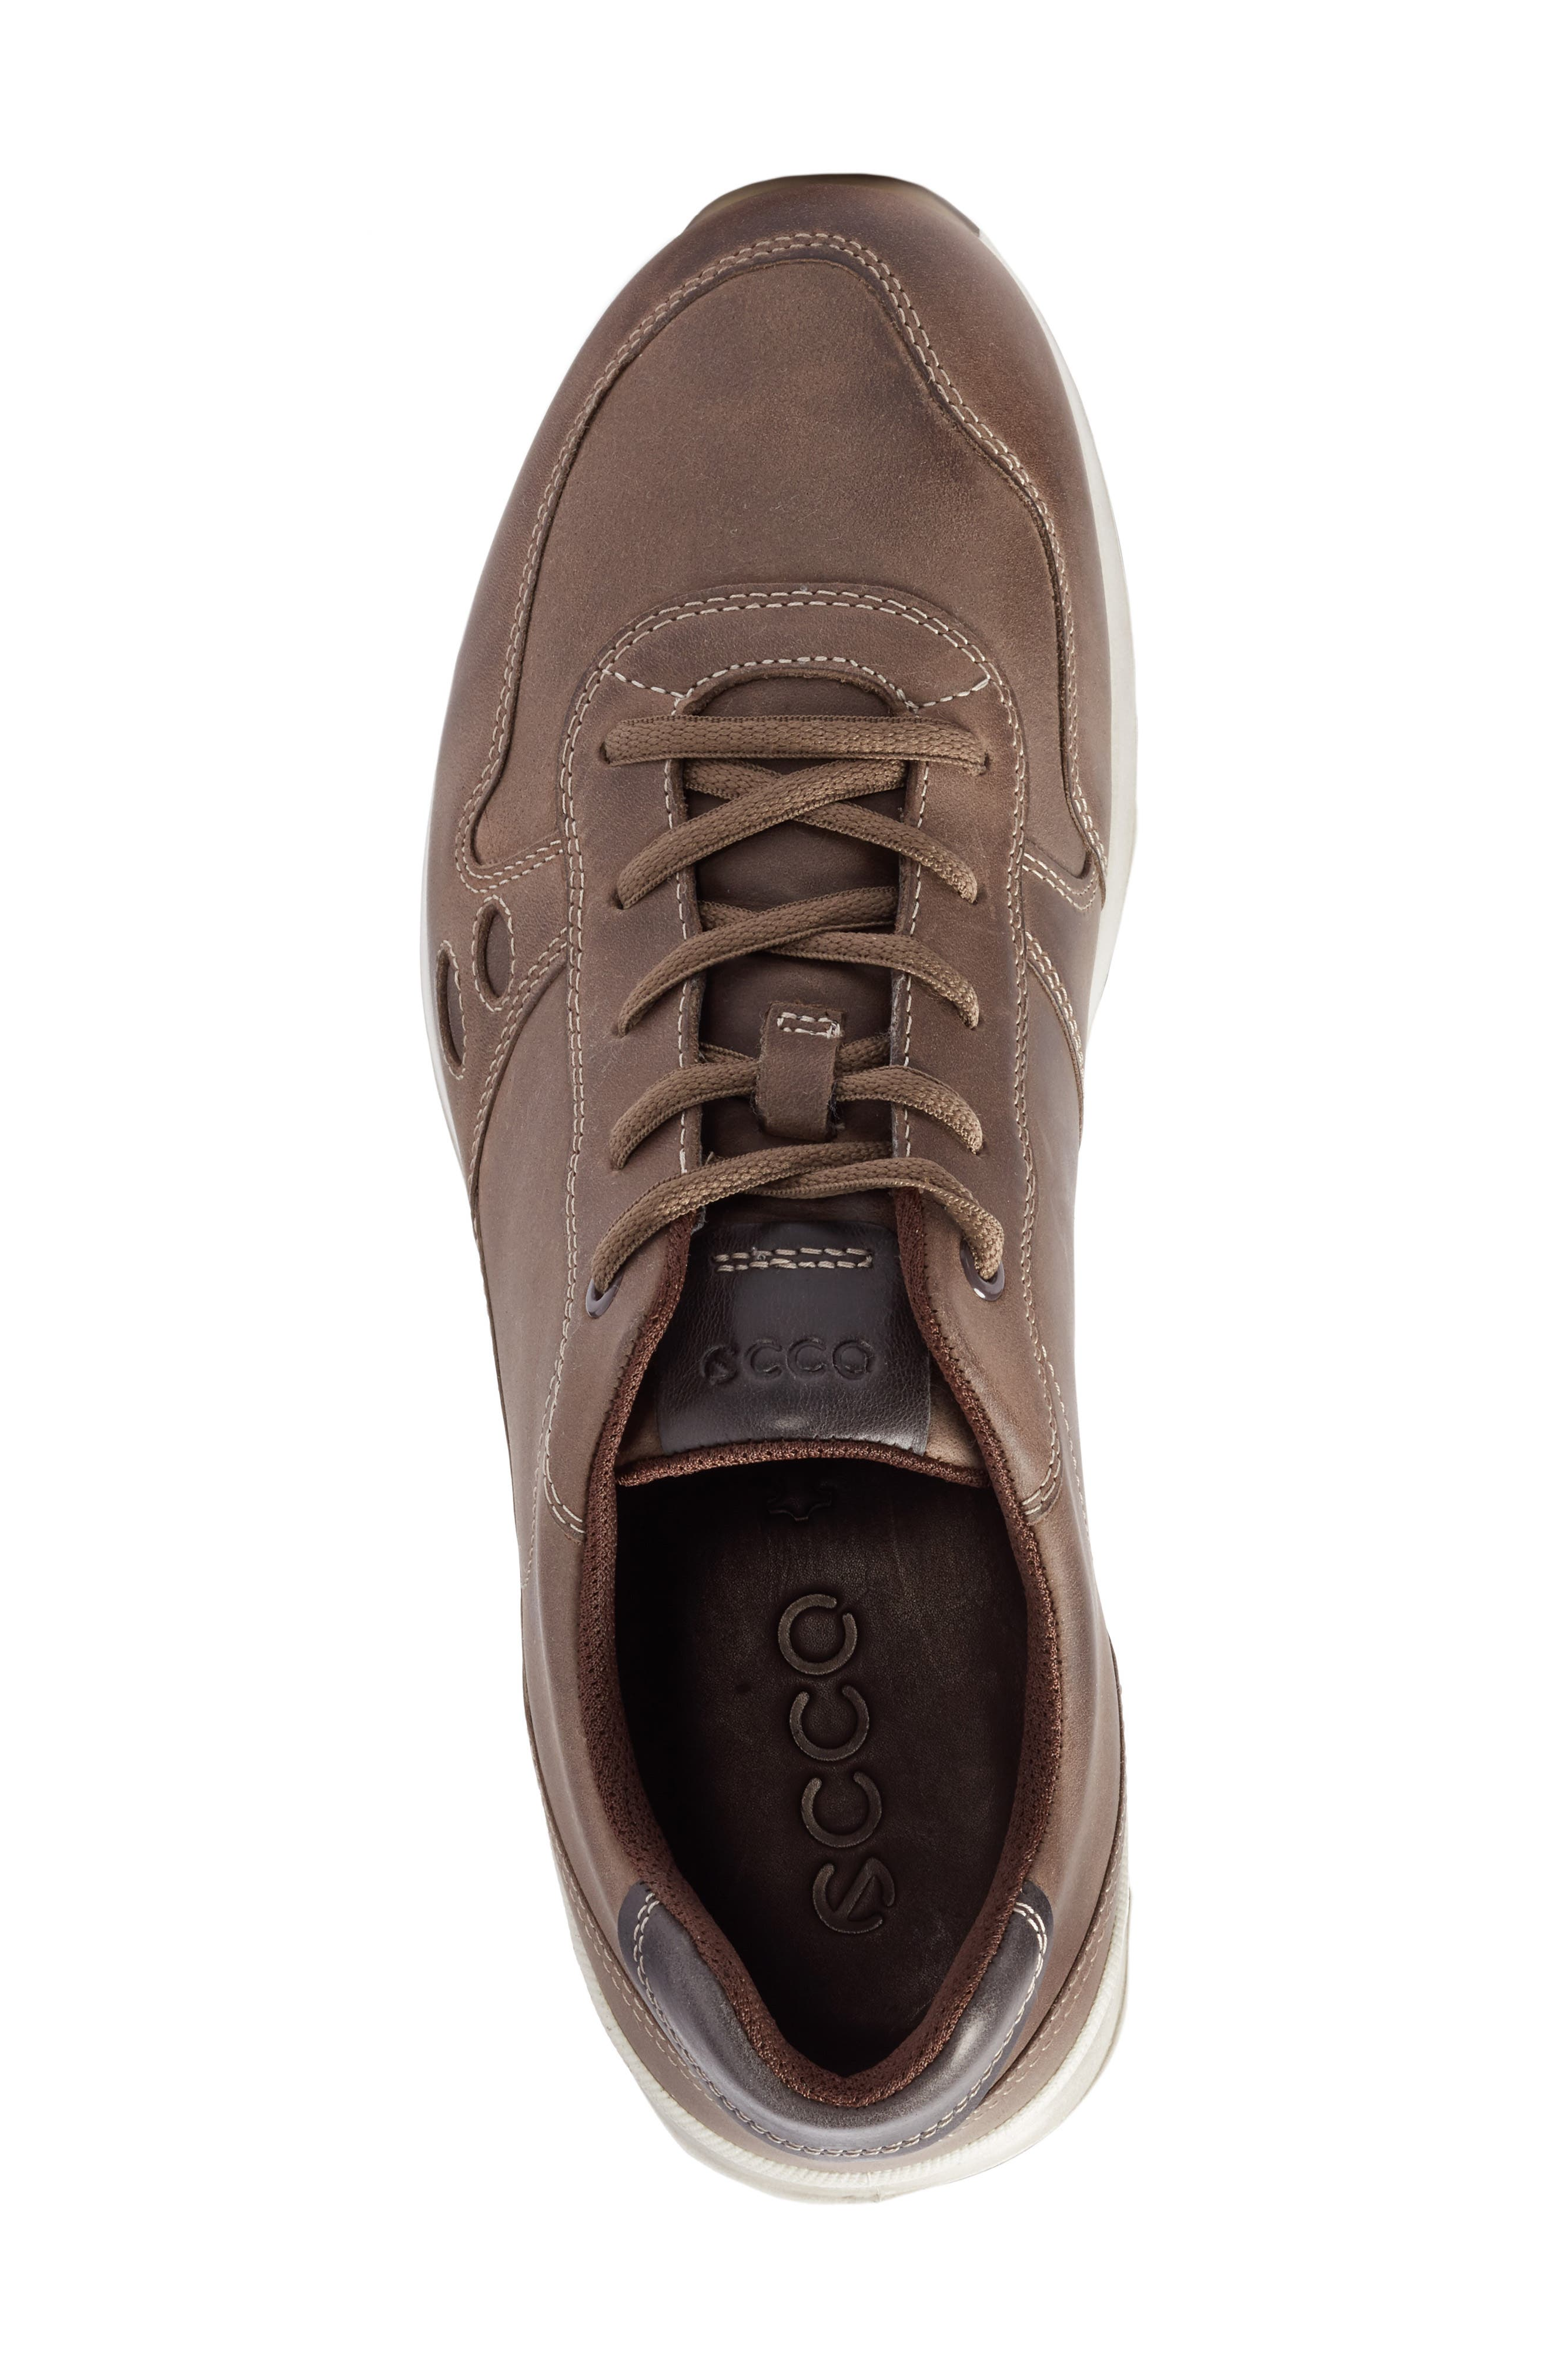 CS14 Retro Sneaker,                             Alternate thumbnail 5, color,                             Stone/ Moonless Leather